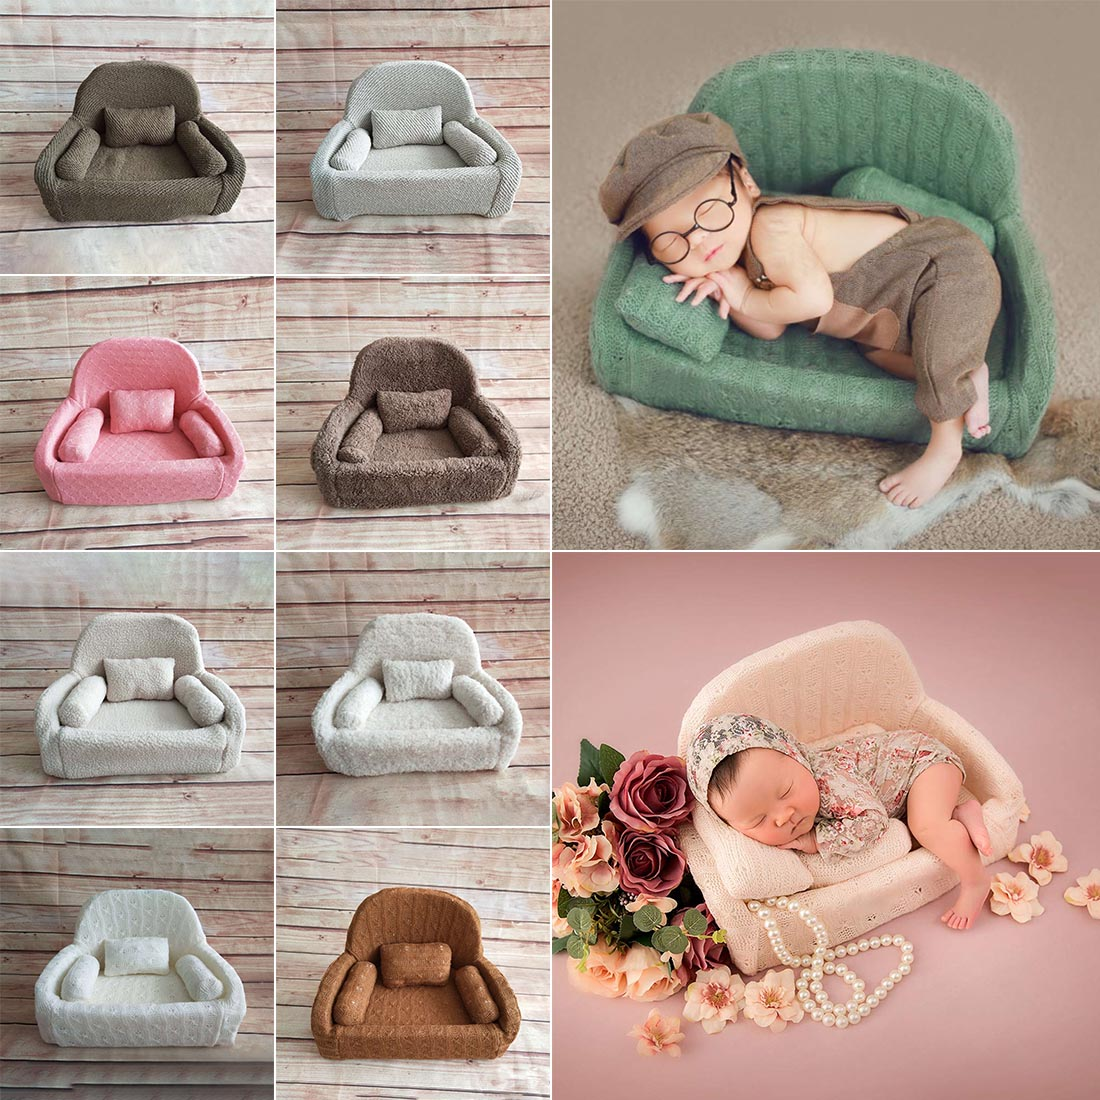 Baby Posing Sofa Pillow Set Chair Decoration Baby Photography Accessories Infant Studio Shooting Props Newborn Photography Props